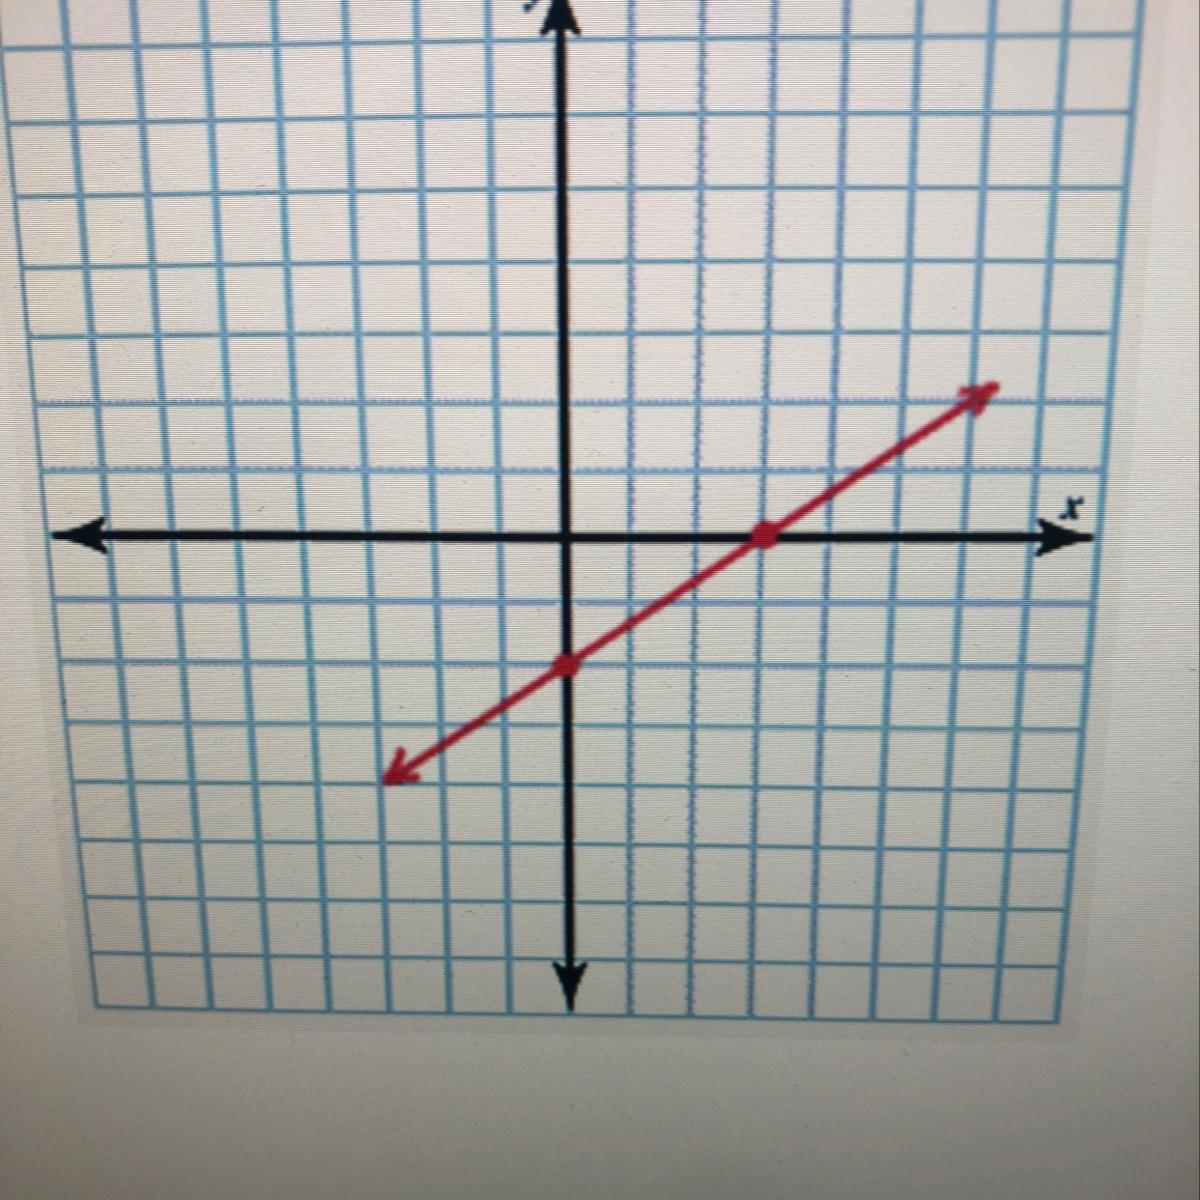 Plot The Following Equation Using The X And Y Intercepts